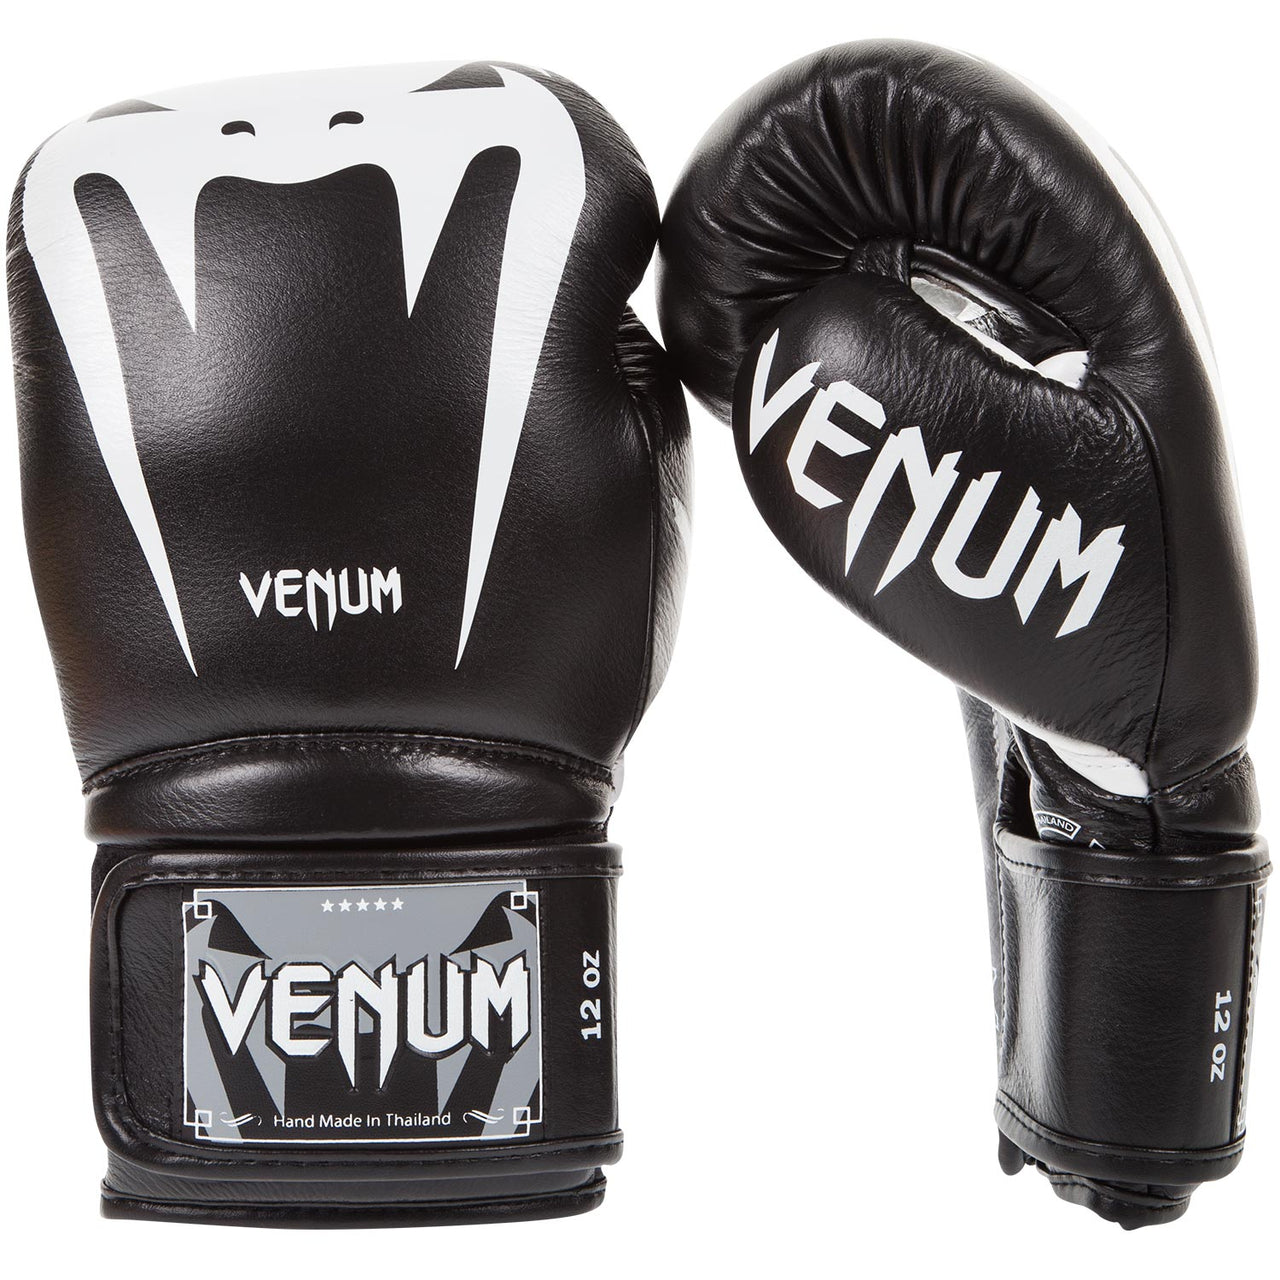 Venum Giant 3.0 Boxing Gloves - Black/White